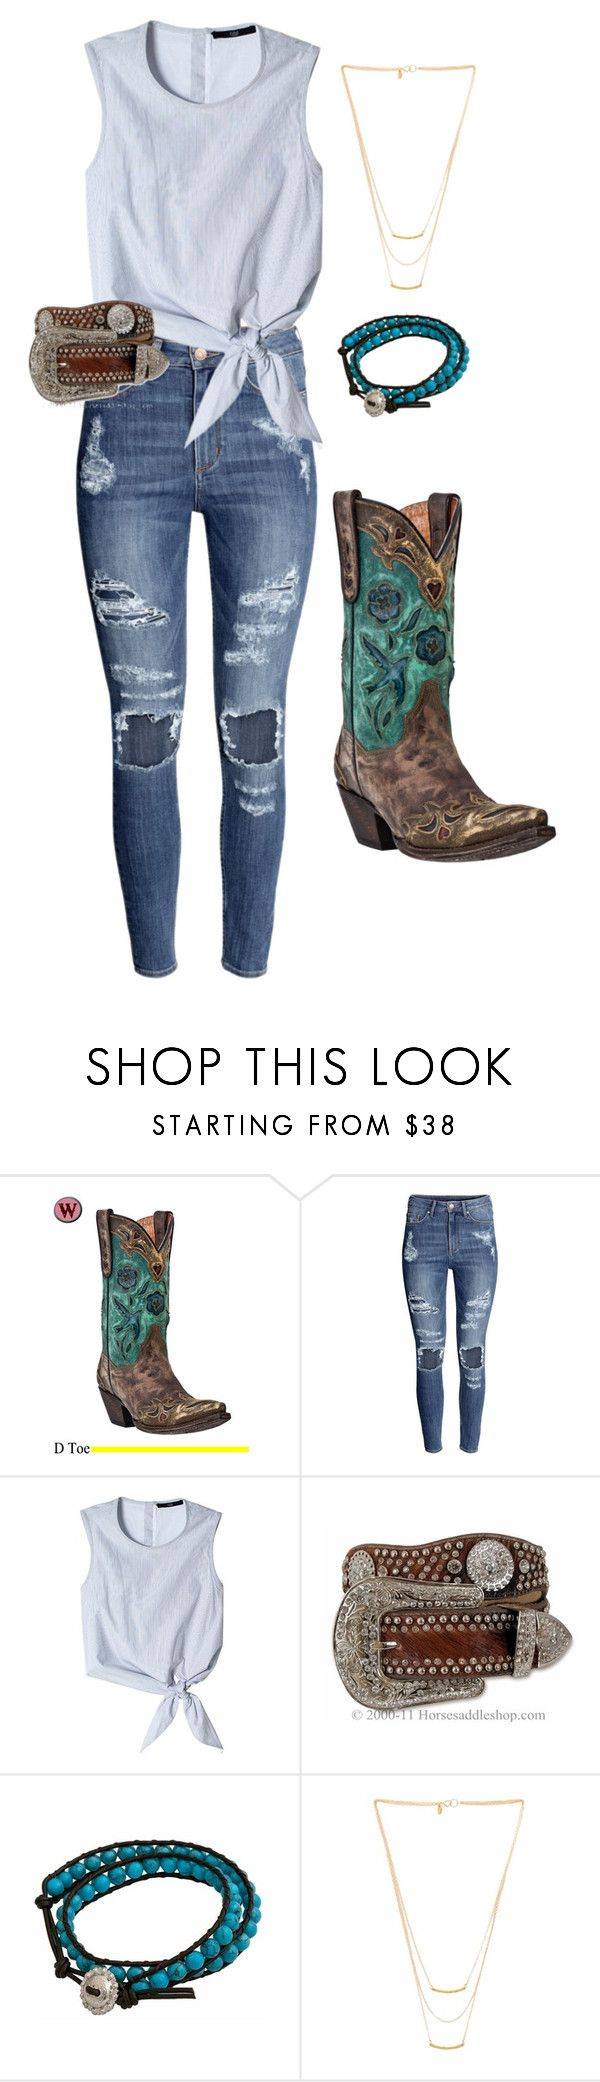 """""""Vintage Bluebird FALL"""" by horse-saddle-shop ❤ liked on Polyvore featuring Dan Post, H&M, TIBI, Montana Silversmiths, Gorjana and vintage"""